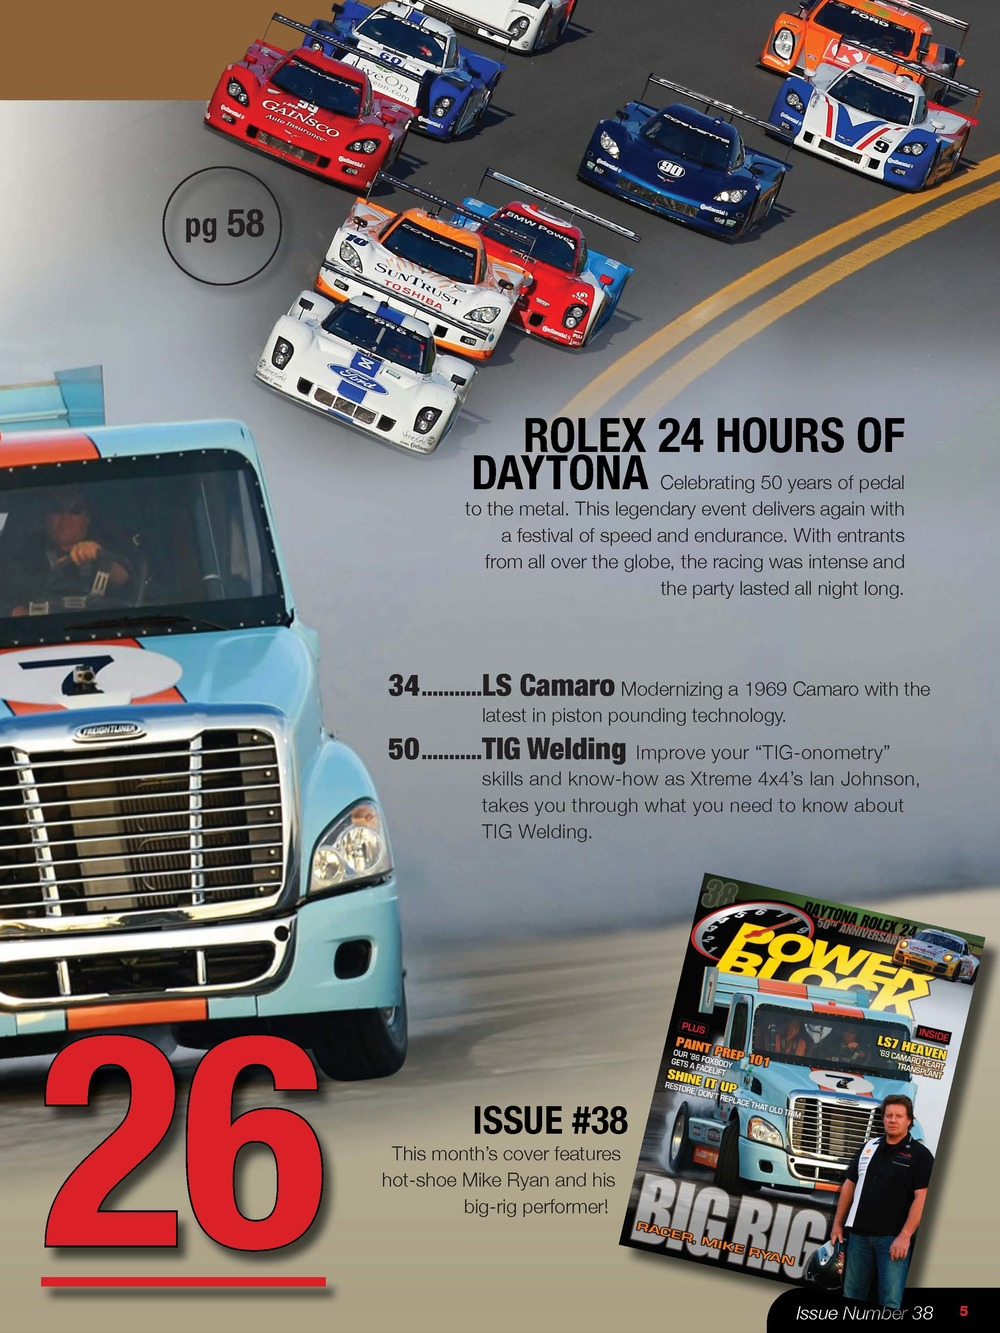 powerblockmagazine_issue38_rolex24_Page_03.jpg